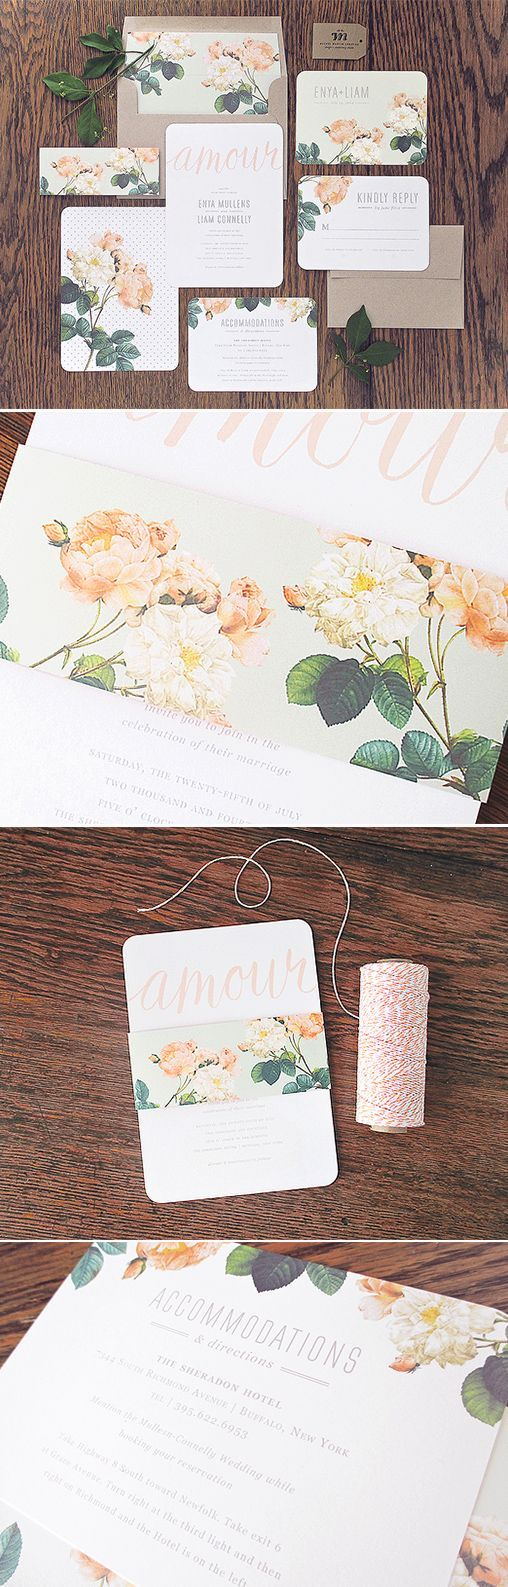 lotus flower wedding invitations%0A floral stationery   pastel wedding ideas   kraft paper envelopes   wedding  invitations   Rachel Marvin